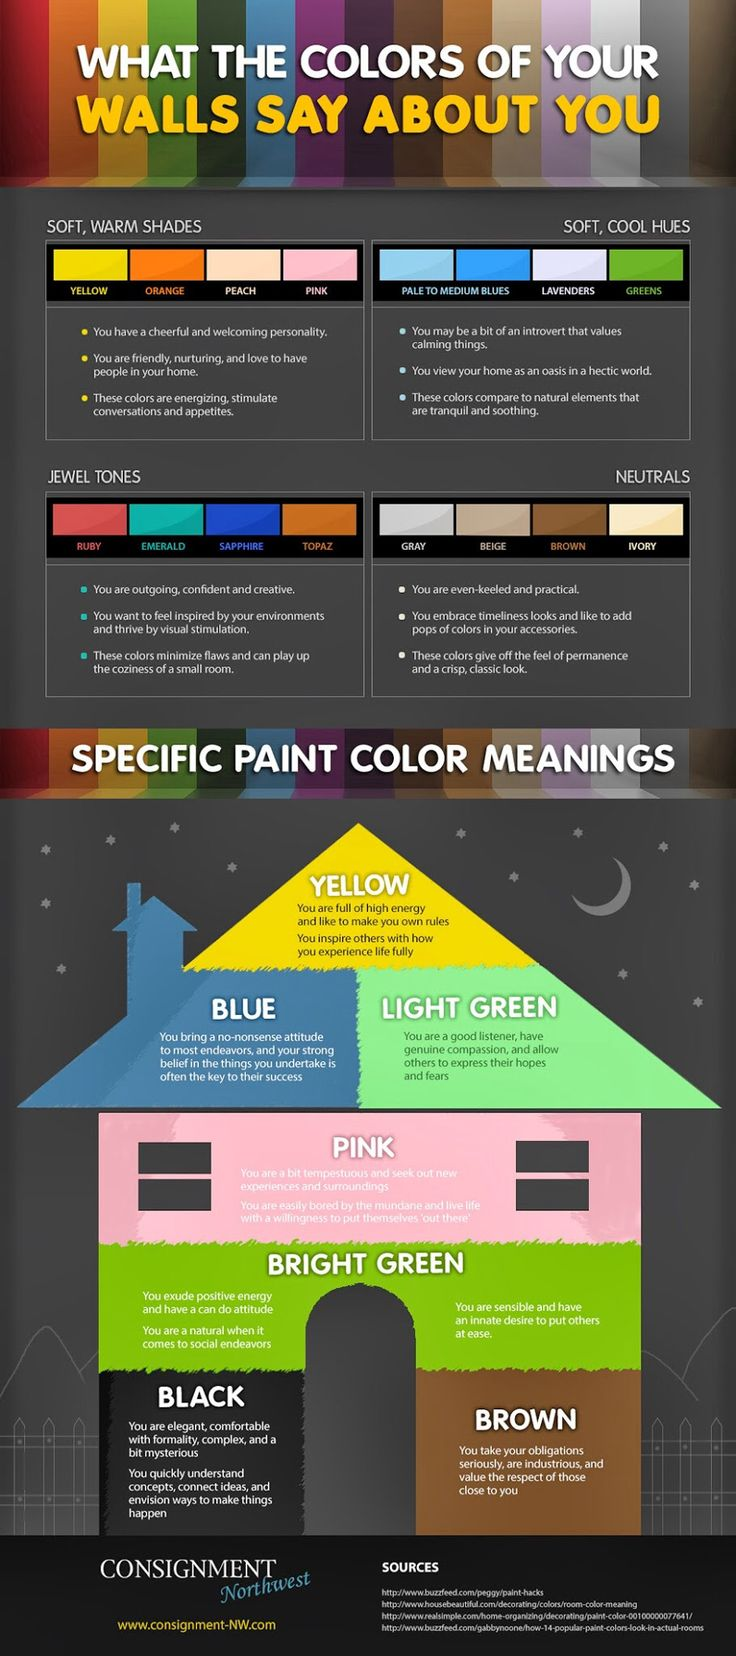 Room Color Meanings 207 best colour meanings images on pinterest | color meanings